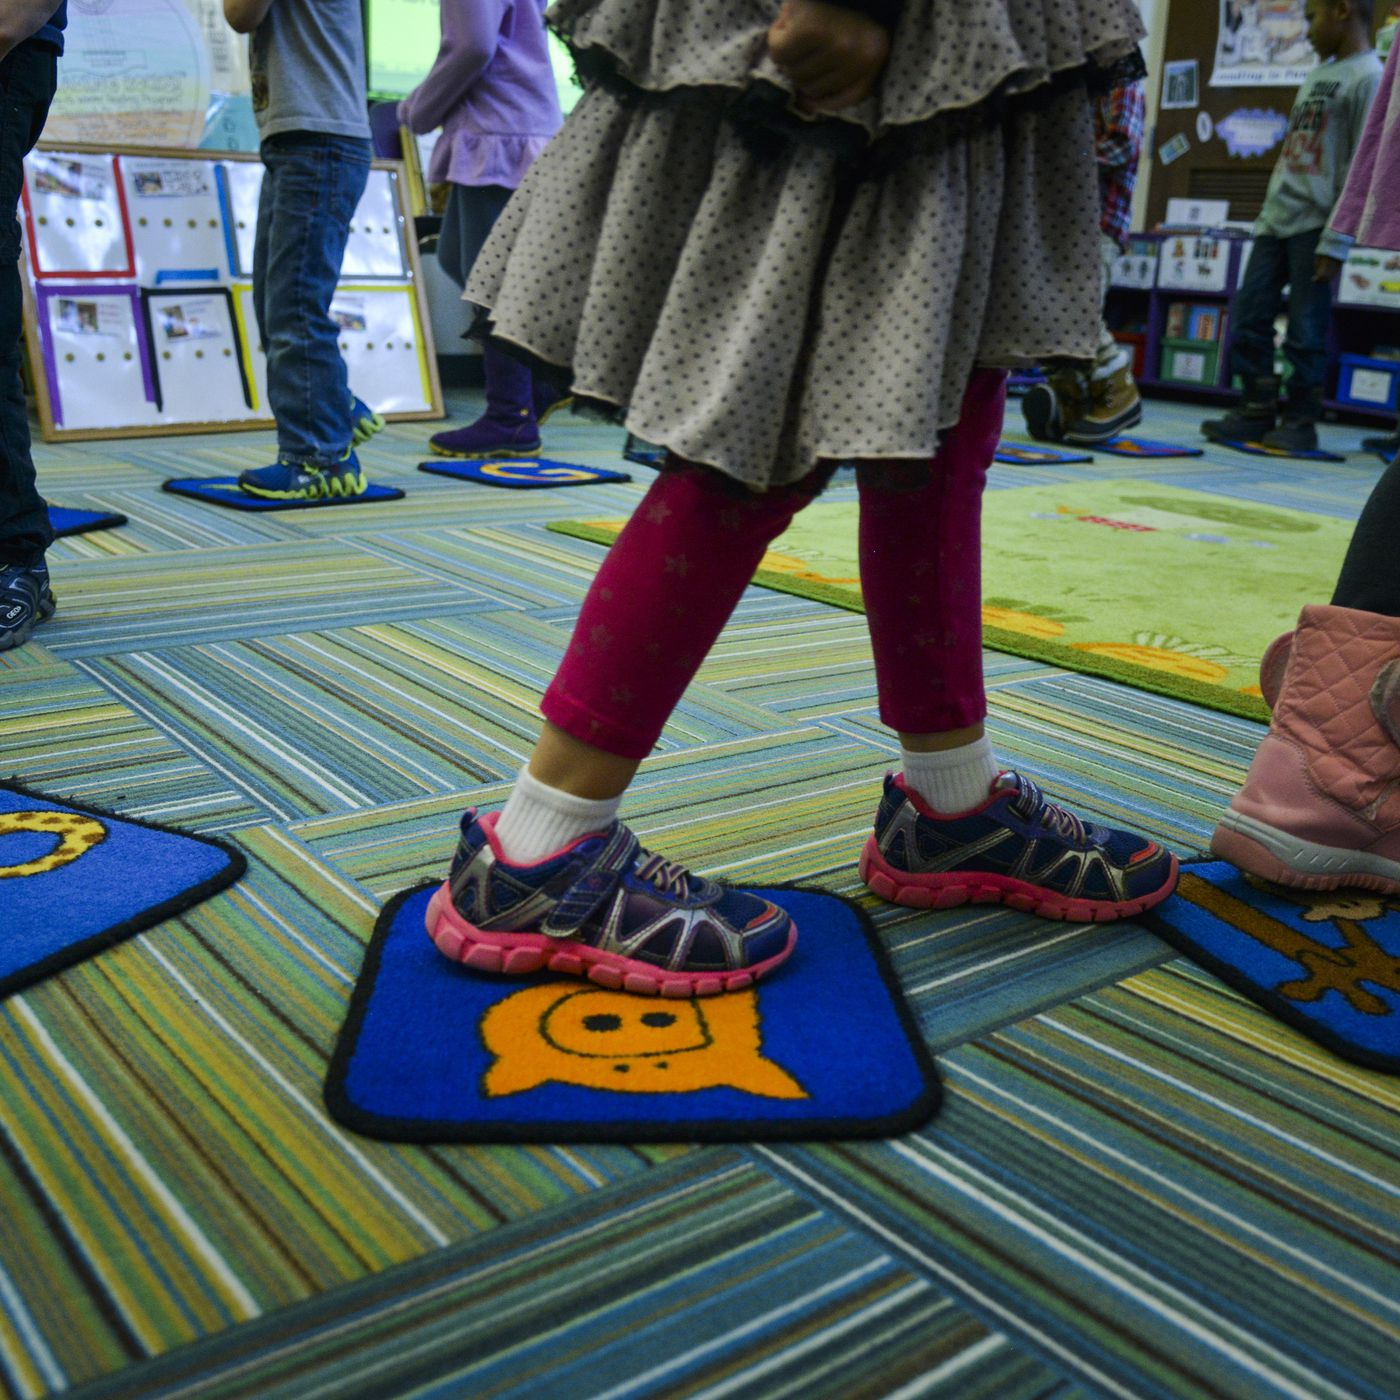 I taught preschool for 15 years  Here's what I saw: the good